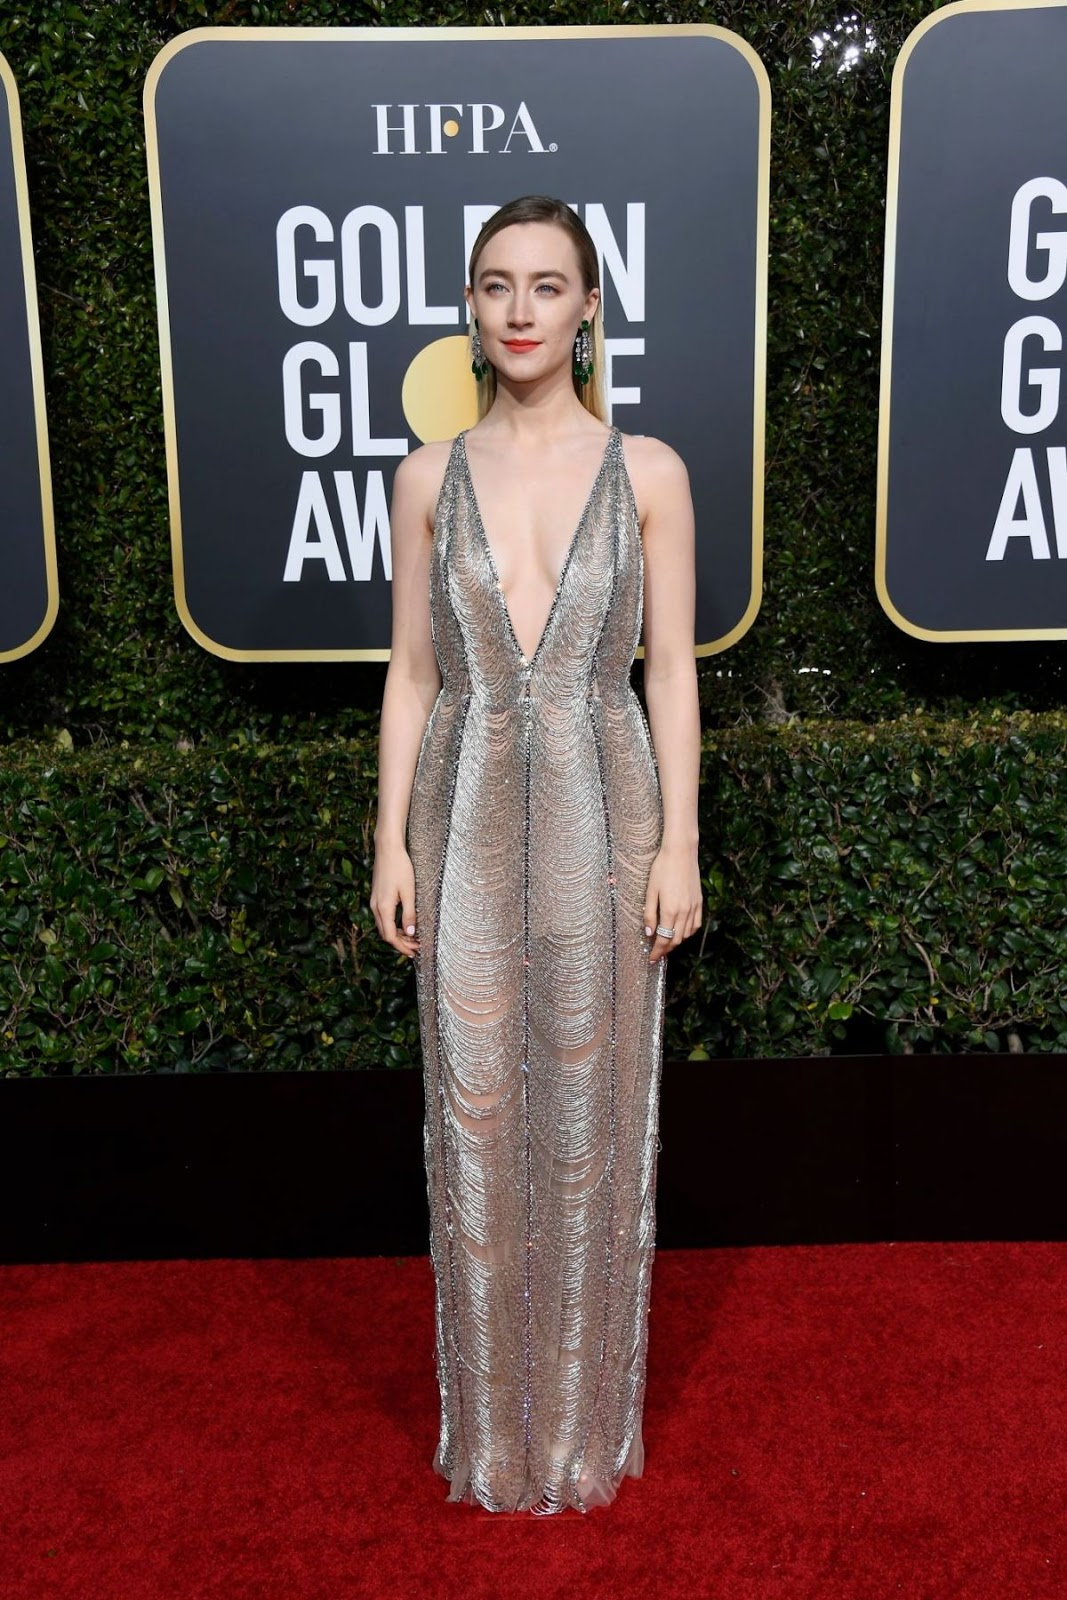 f0e8f1e28 Saoirse Ronan goes glam in Gucci at the 2019 Golden Globes